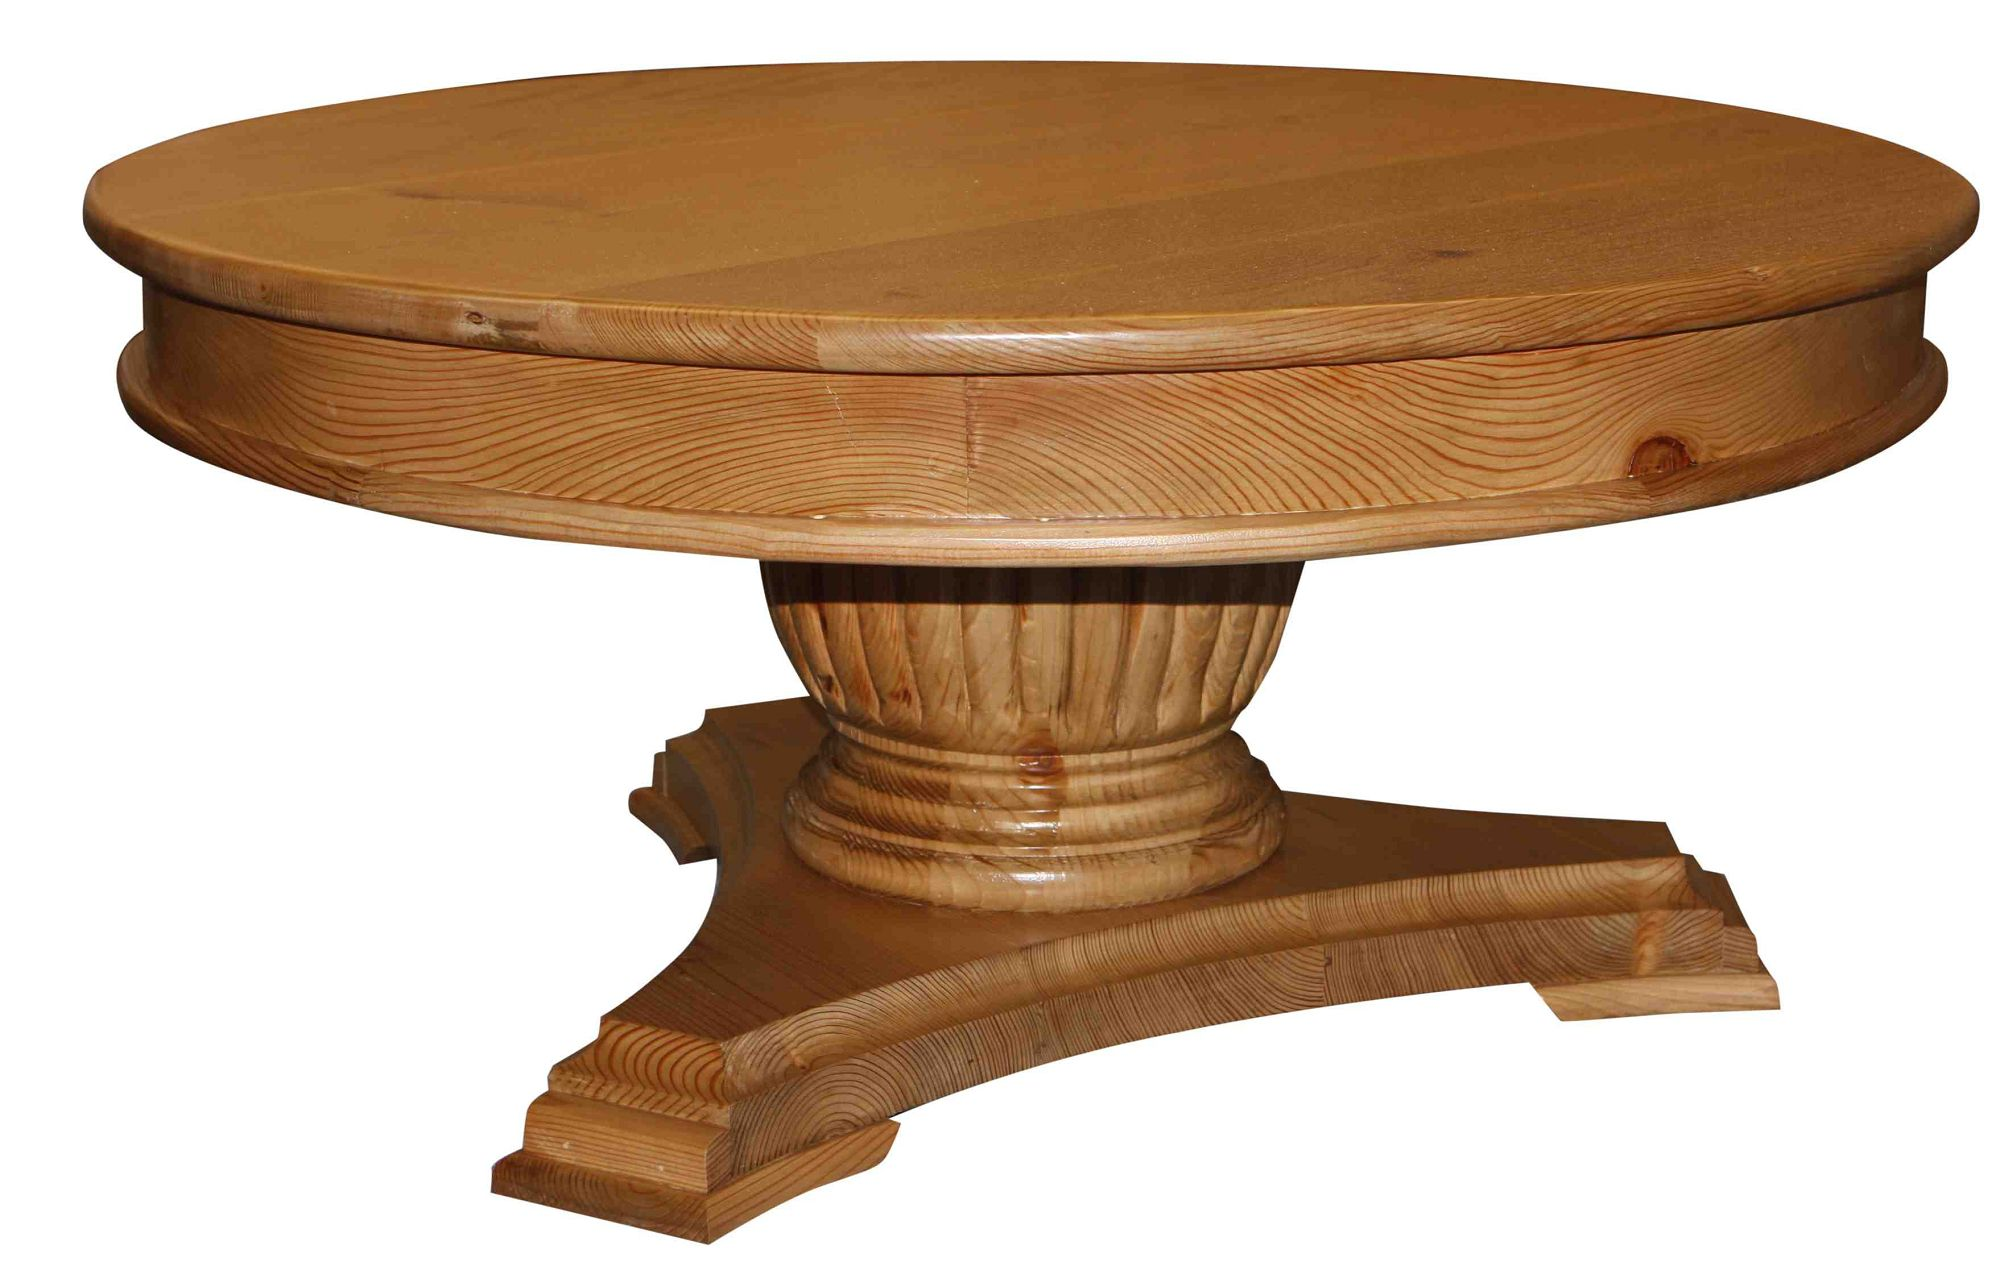 Stunning Design Of The Round Wood Coffee Table With Single Legs Made Of Wooden Oak Materials Ideas